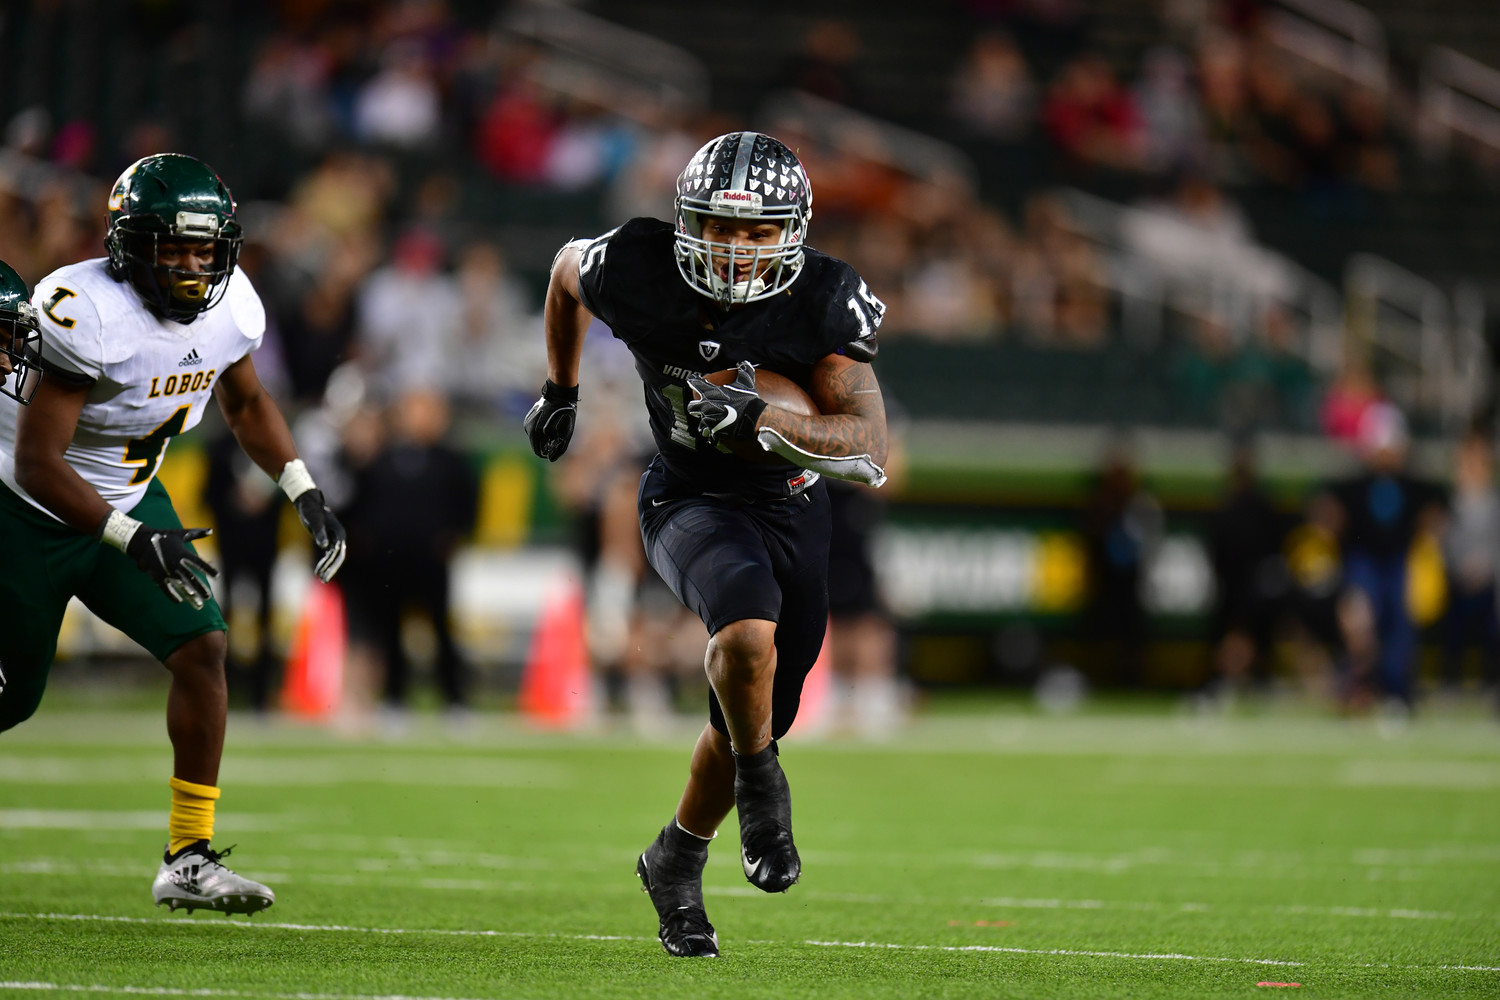 Isaiah Smallwood ran for three touchdowns, but Vandegrift fell to Longview 56-28 in the regional semifinals Saturday at McLane Stadium in Waco.